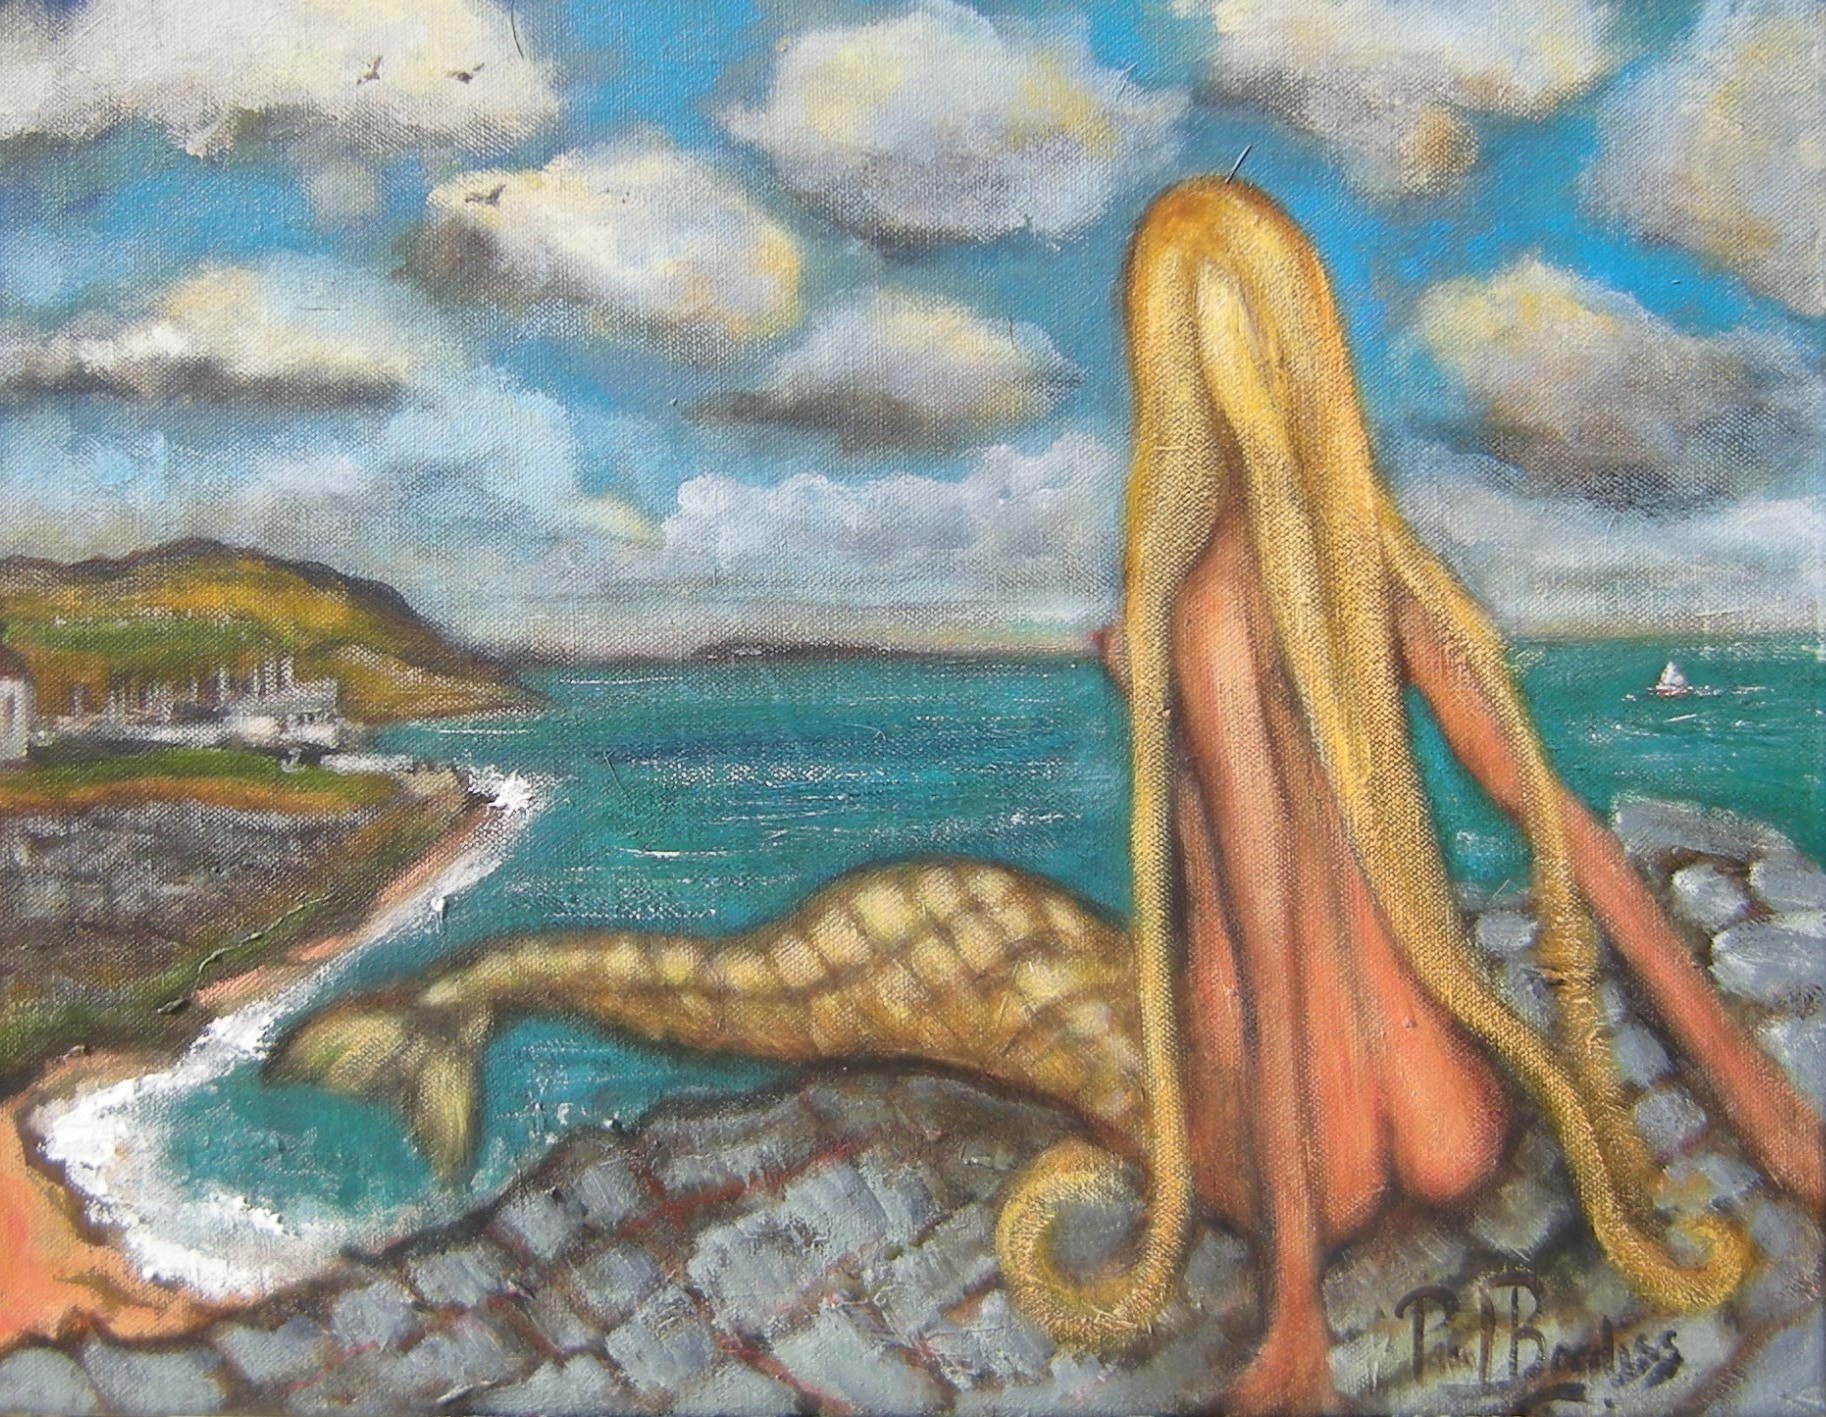 The Greystones mermaid